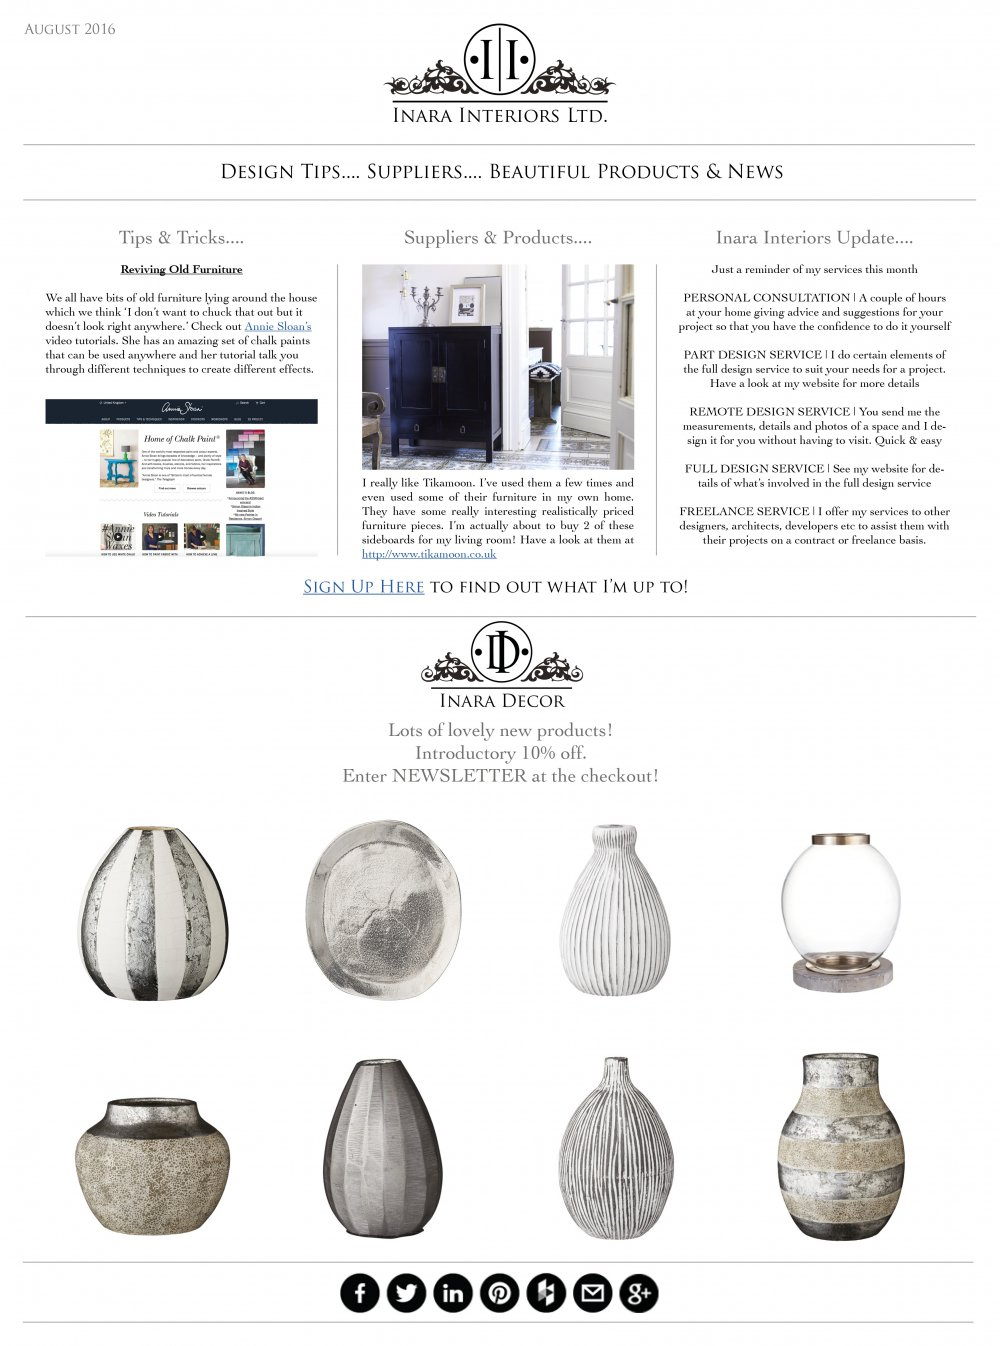 Inara Interiors | August Newsletter 2016